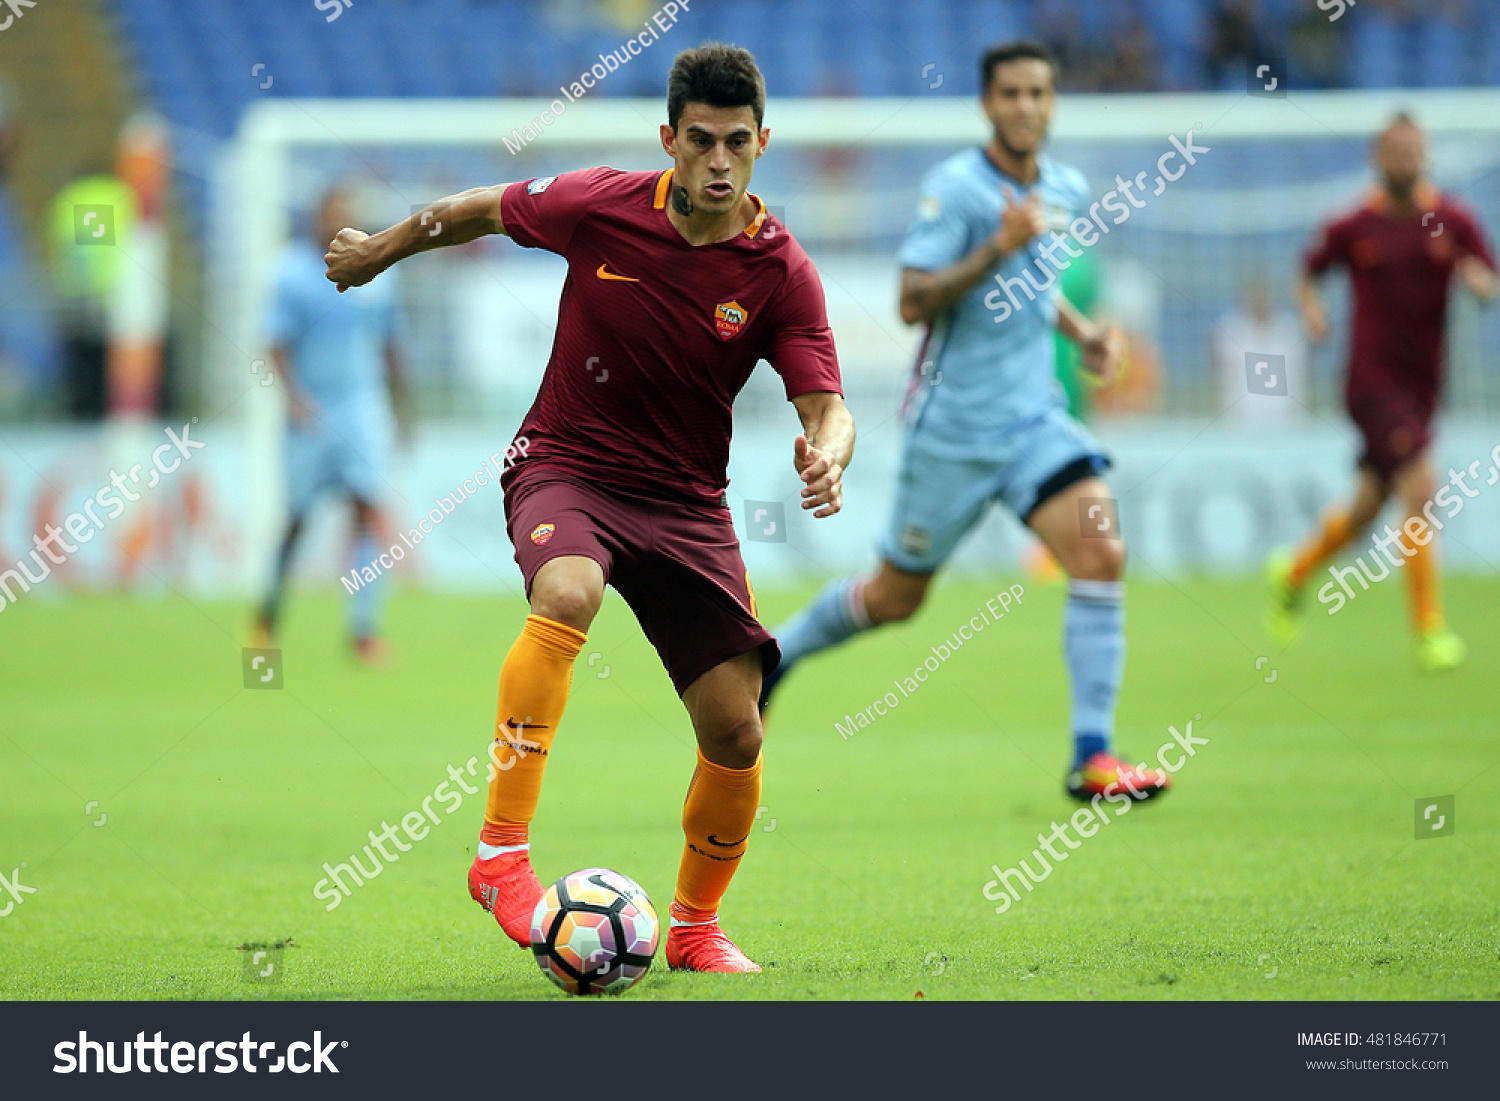 Rome Italy 11 september 2016 Vasco Regini and Perotti in action during the italian Serie A league match between As Roma and Sampdoria at Olimpic Stadium on Seprember 11 2016 in Rome Italy